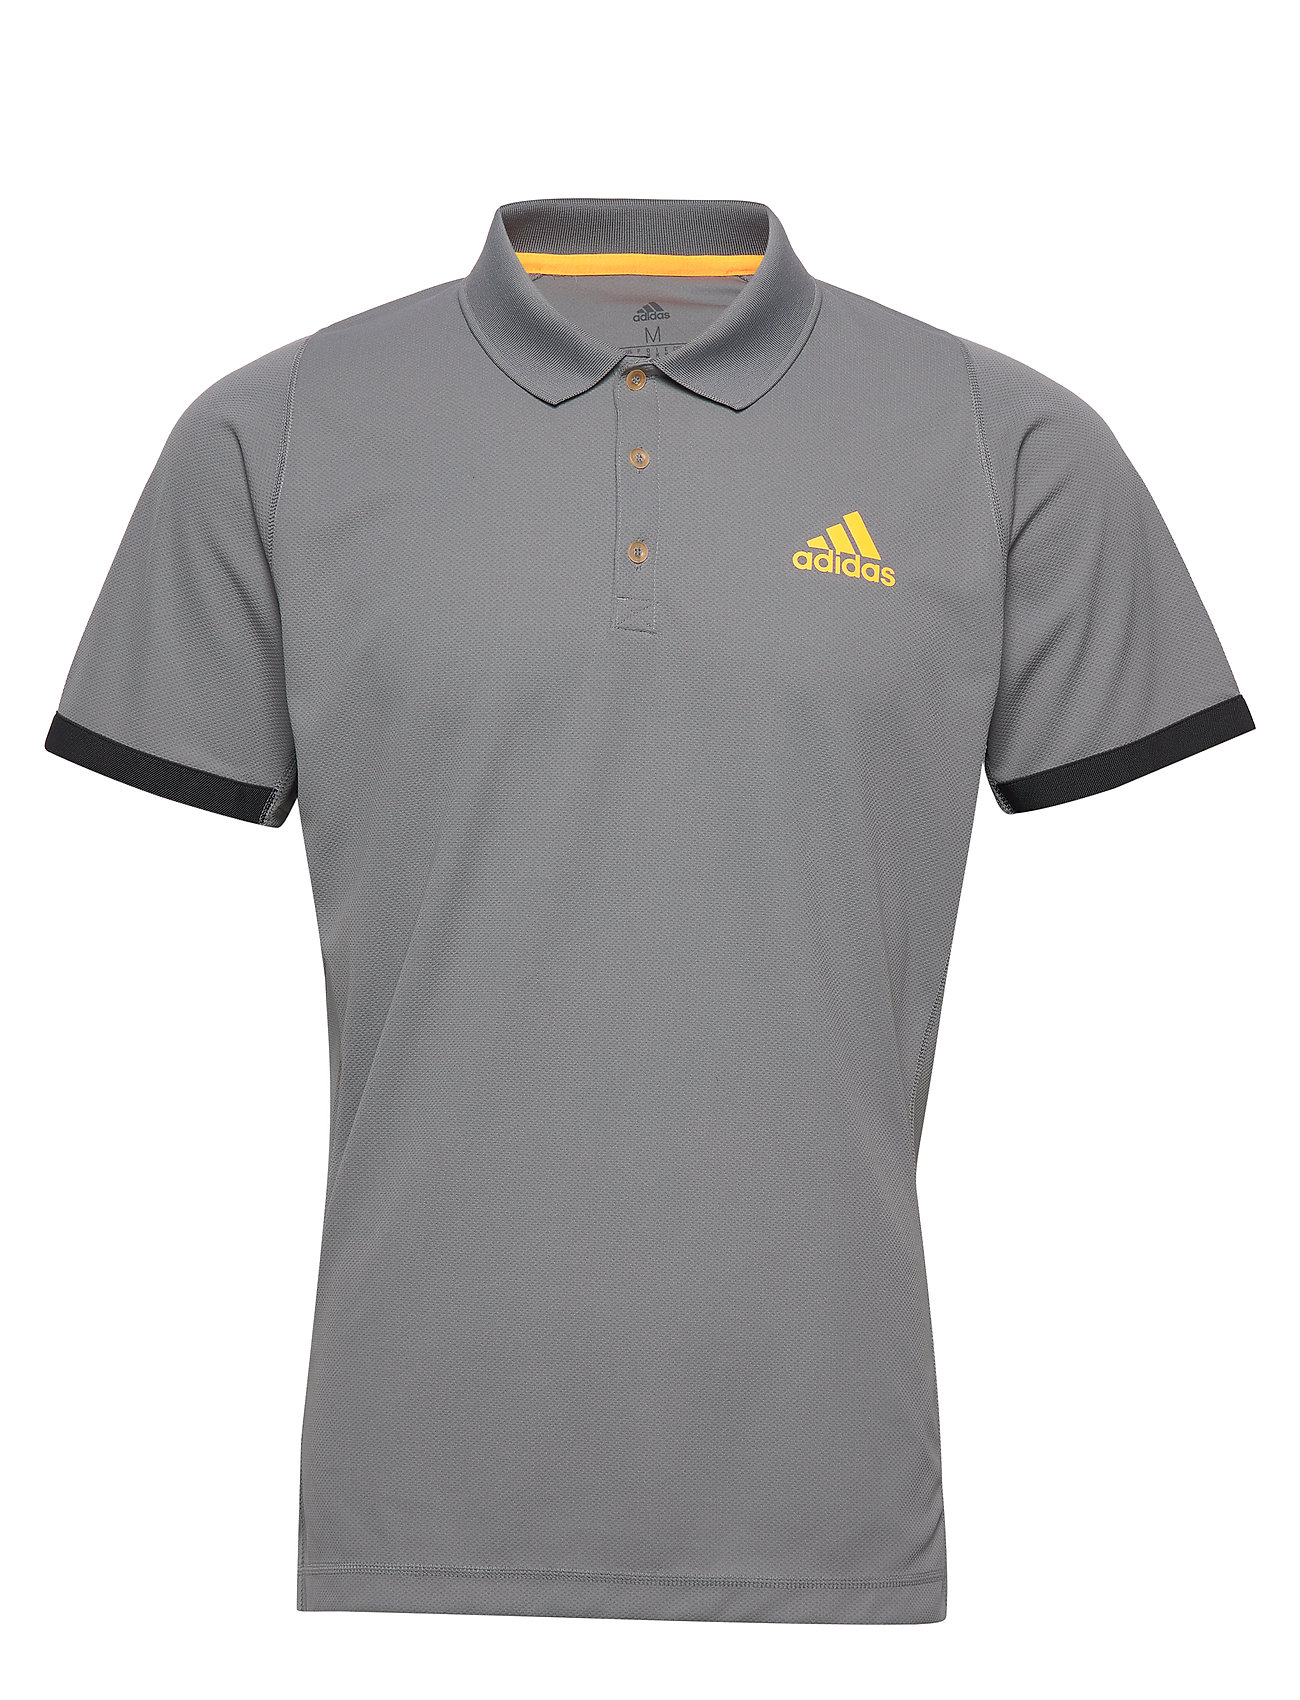 adidas Tennis NY POLO - GREY